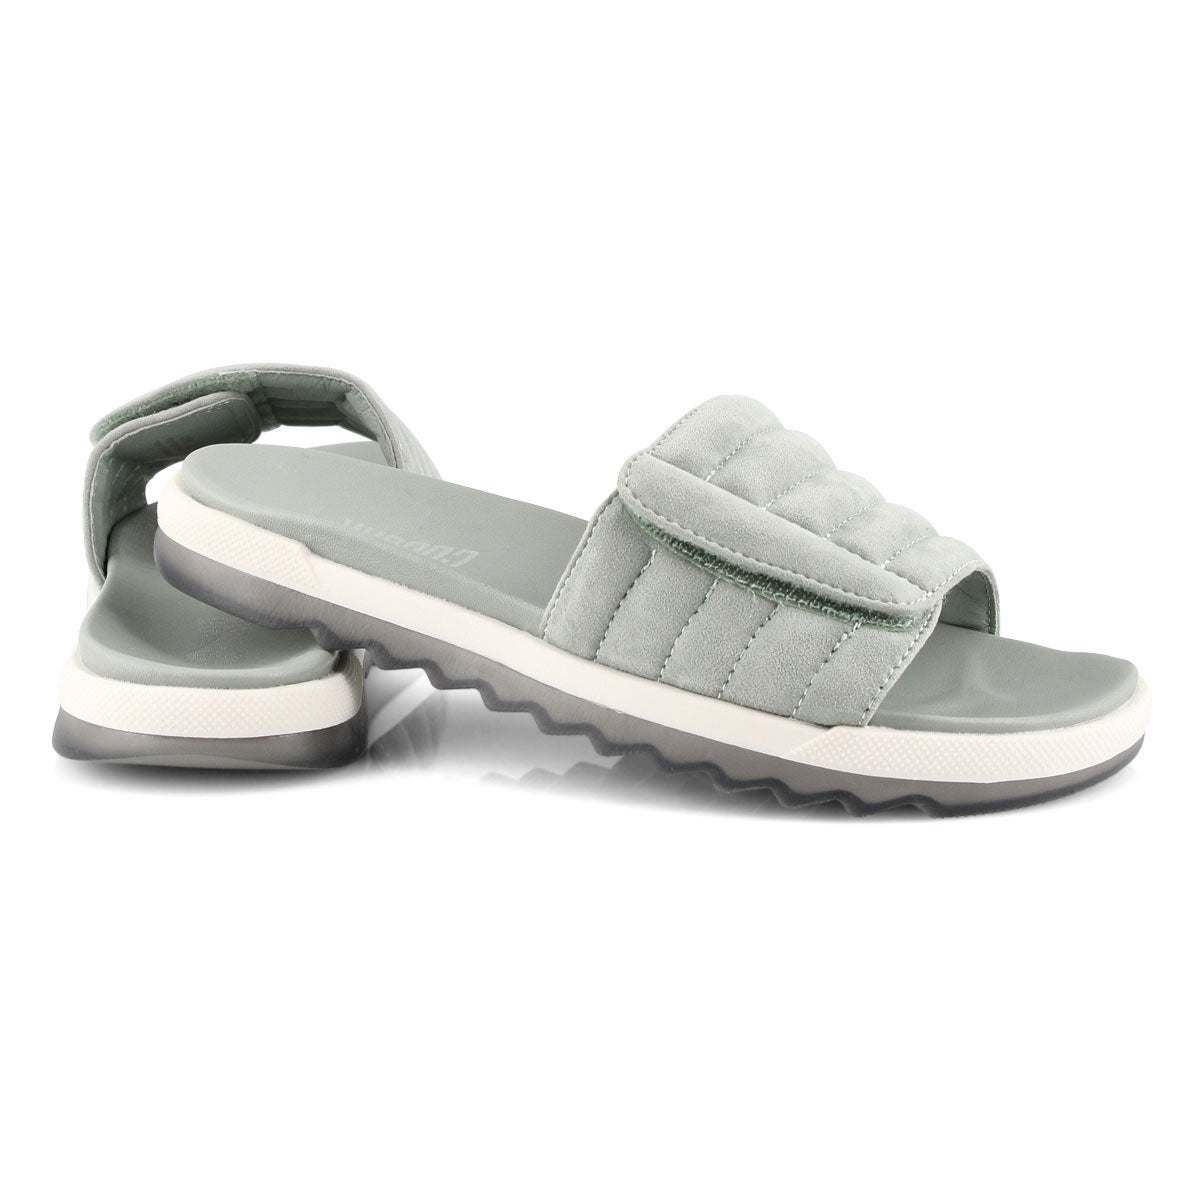 Women's LUPIN sage slide sandals